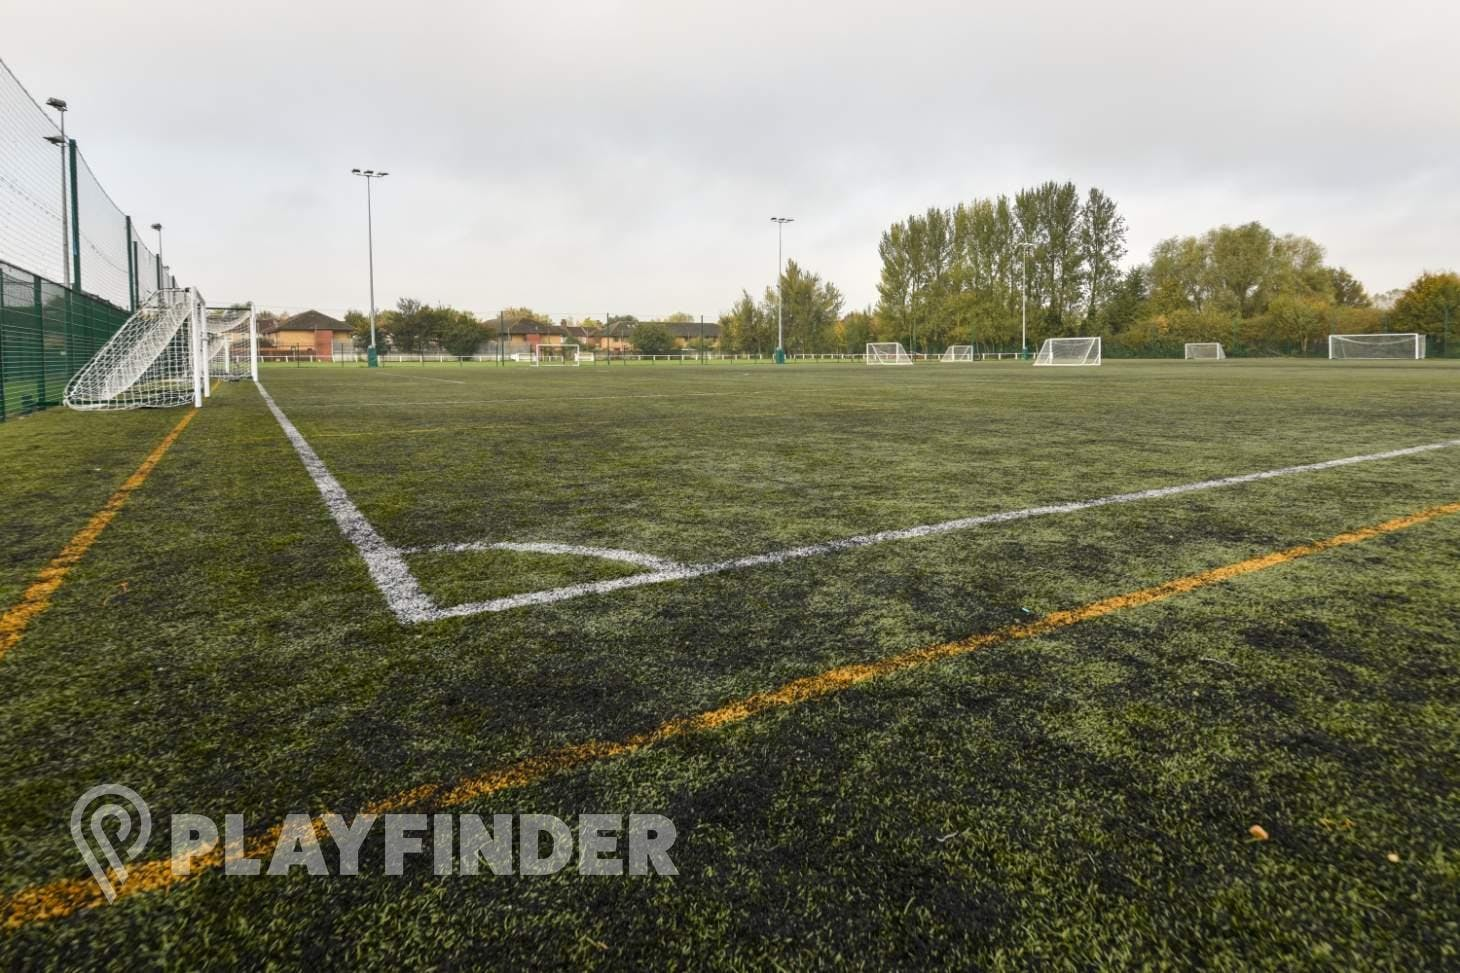 Match Day Centres 7 a side | 3G Astroturf football pitch